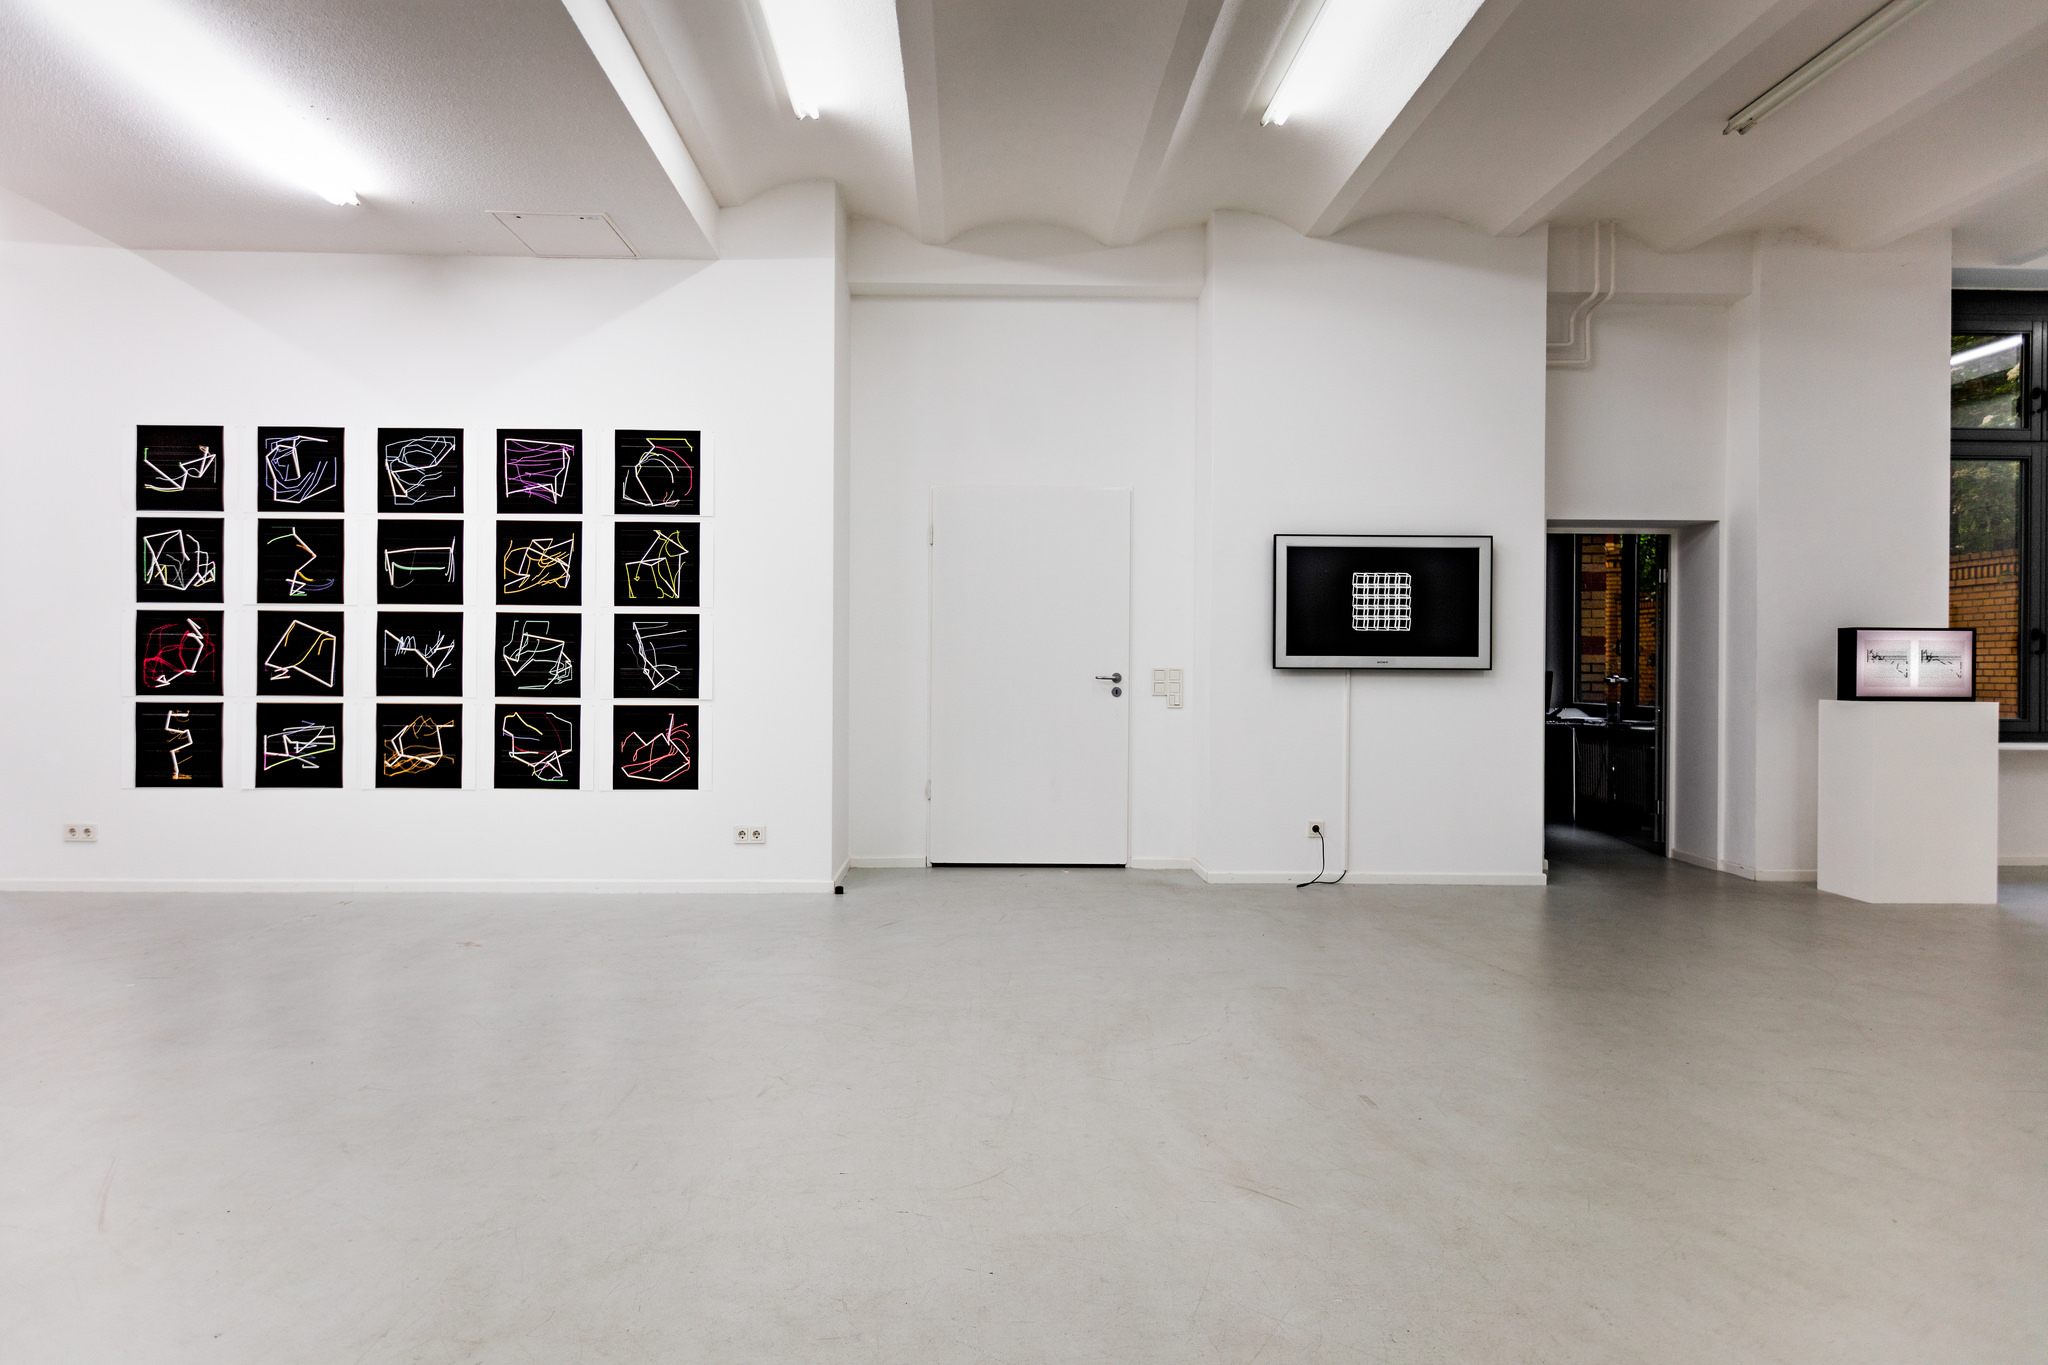 Manfred Mohr, Visuell, Musikalisch, 2016, installation view